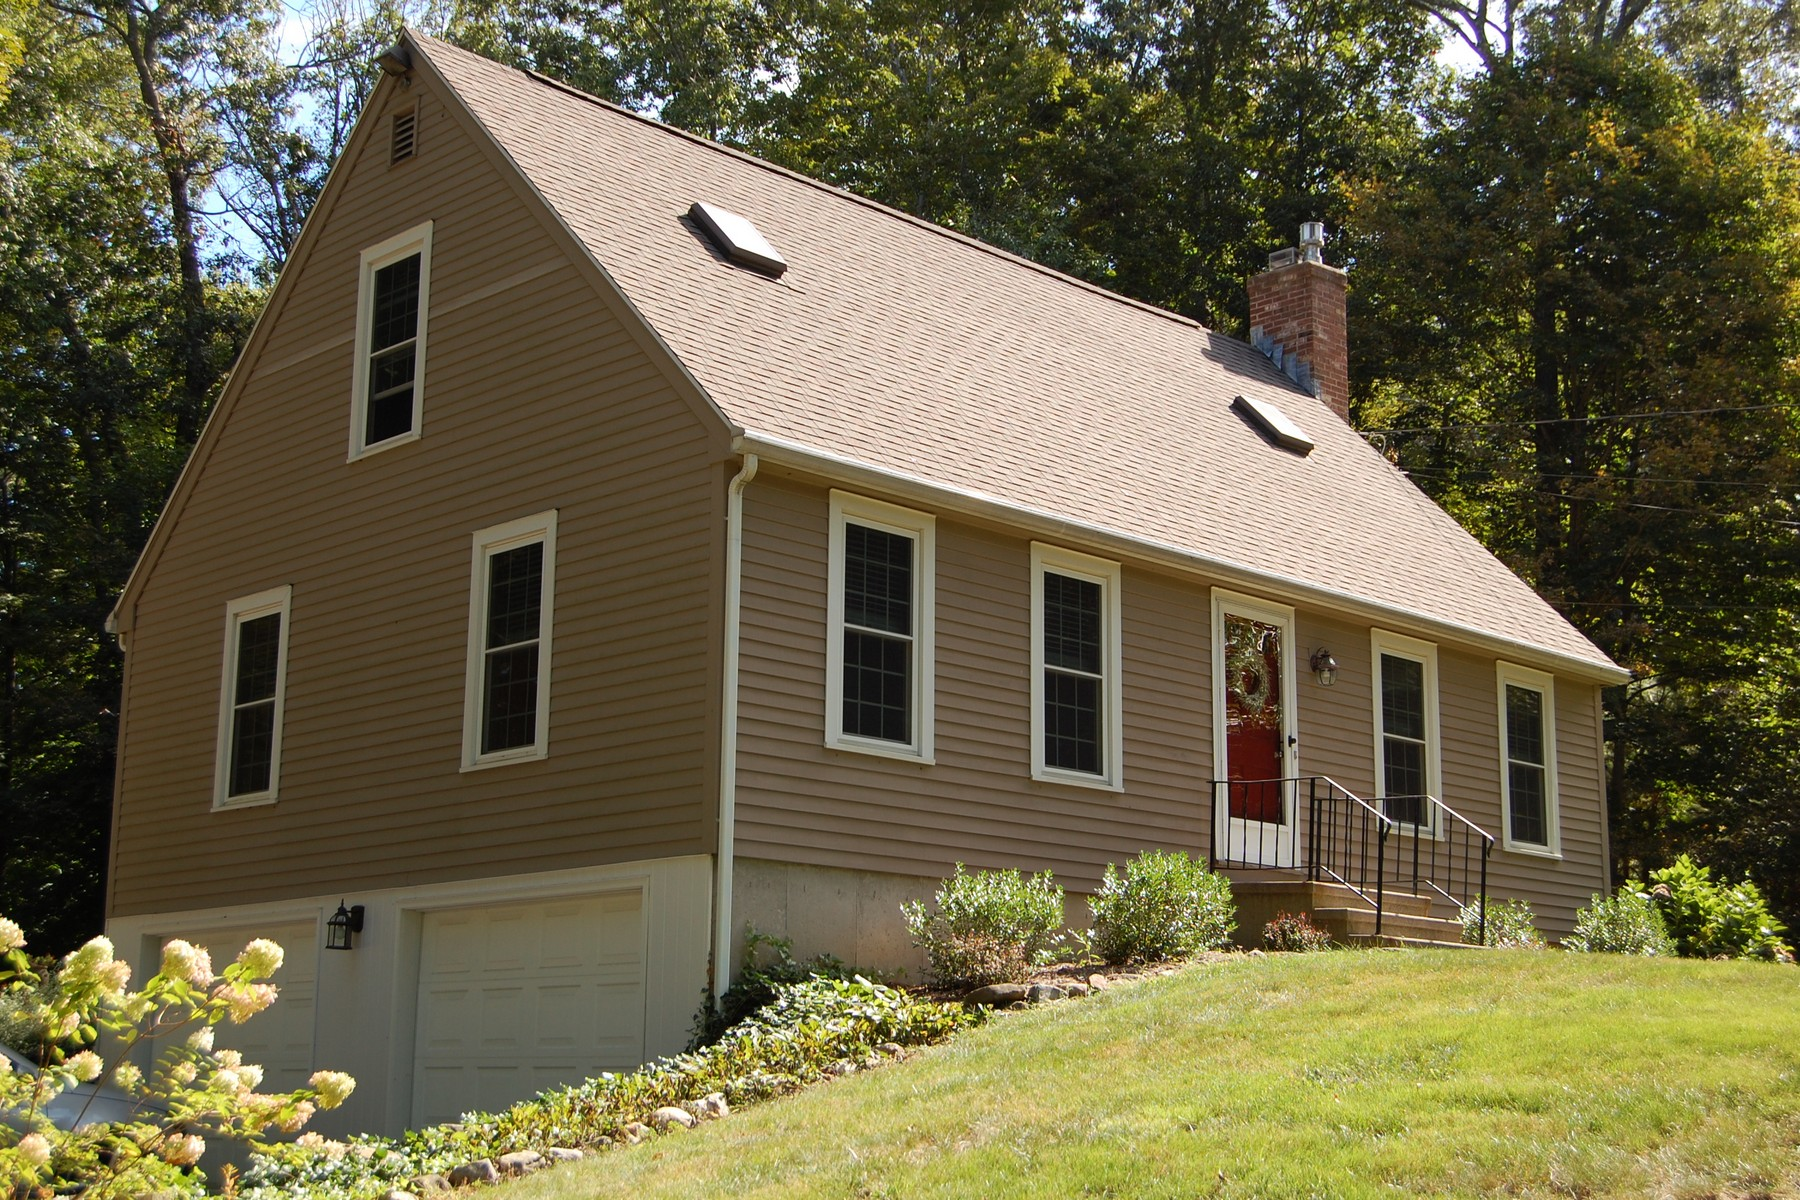 Property For Sale at Close to Everything Centerbrook & Essex Has to Offer